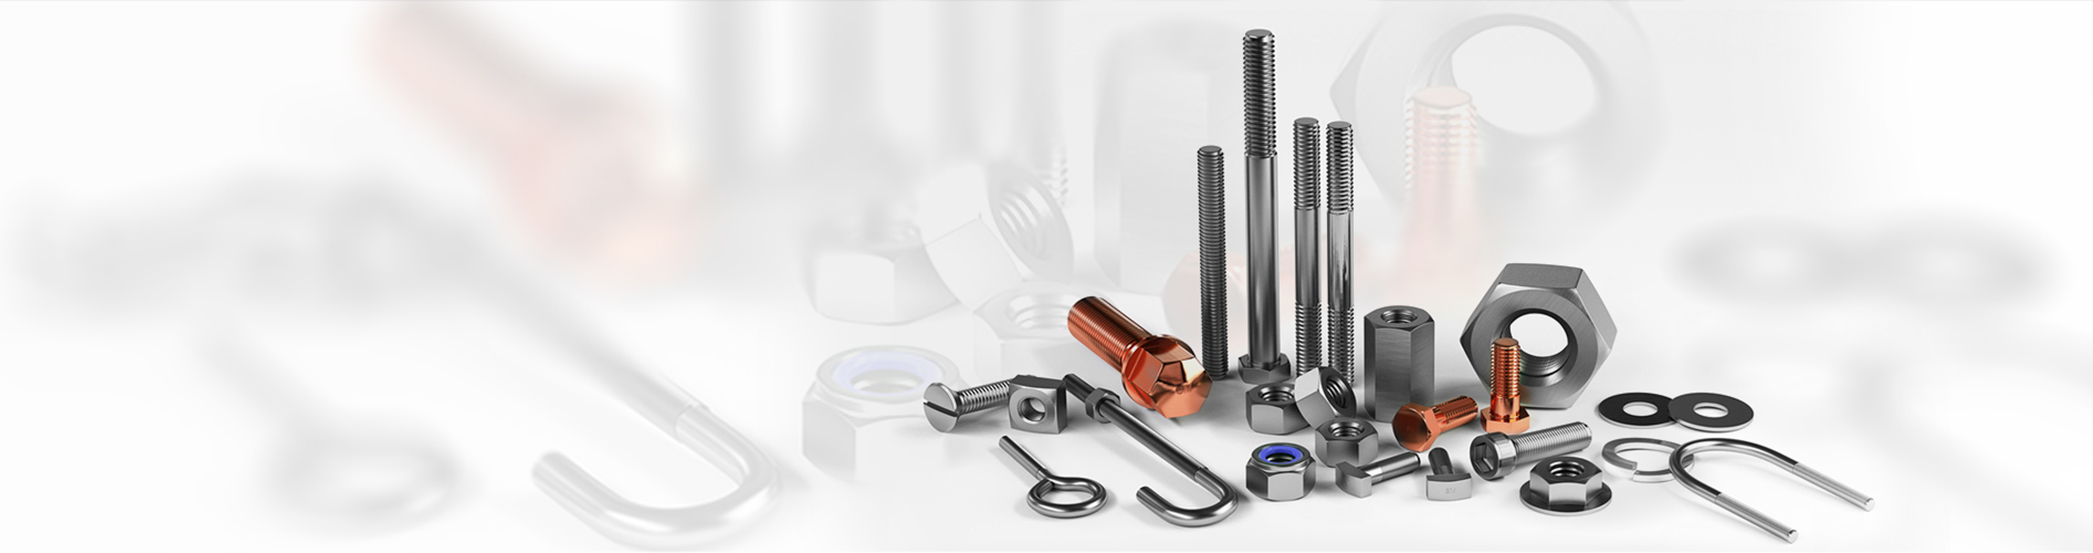 All Type Of Fasteners Manufacturer